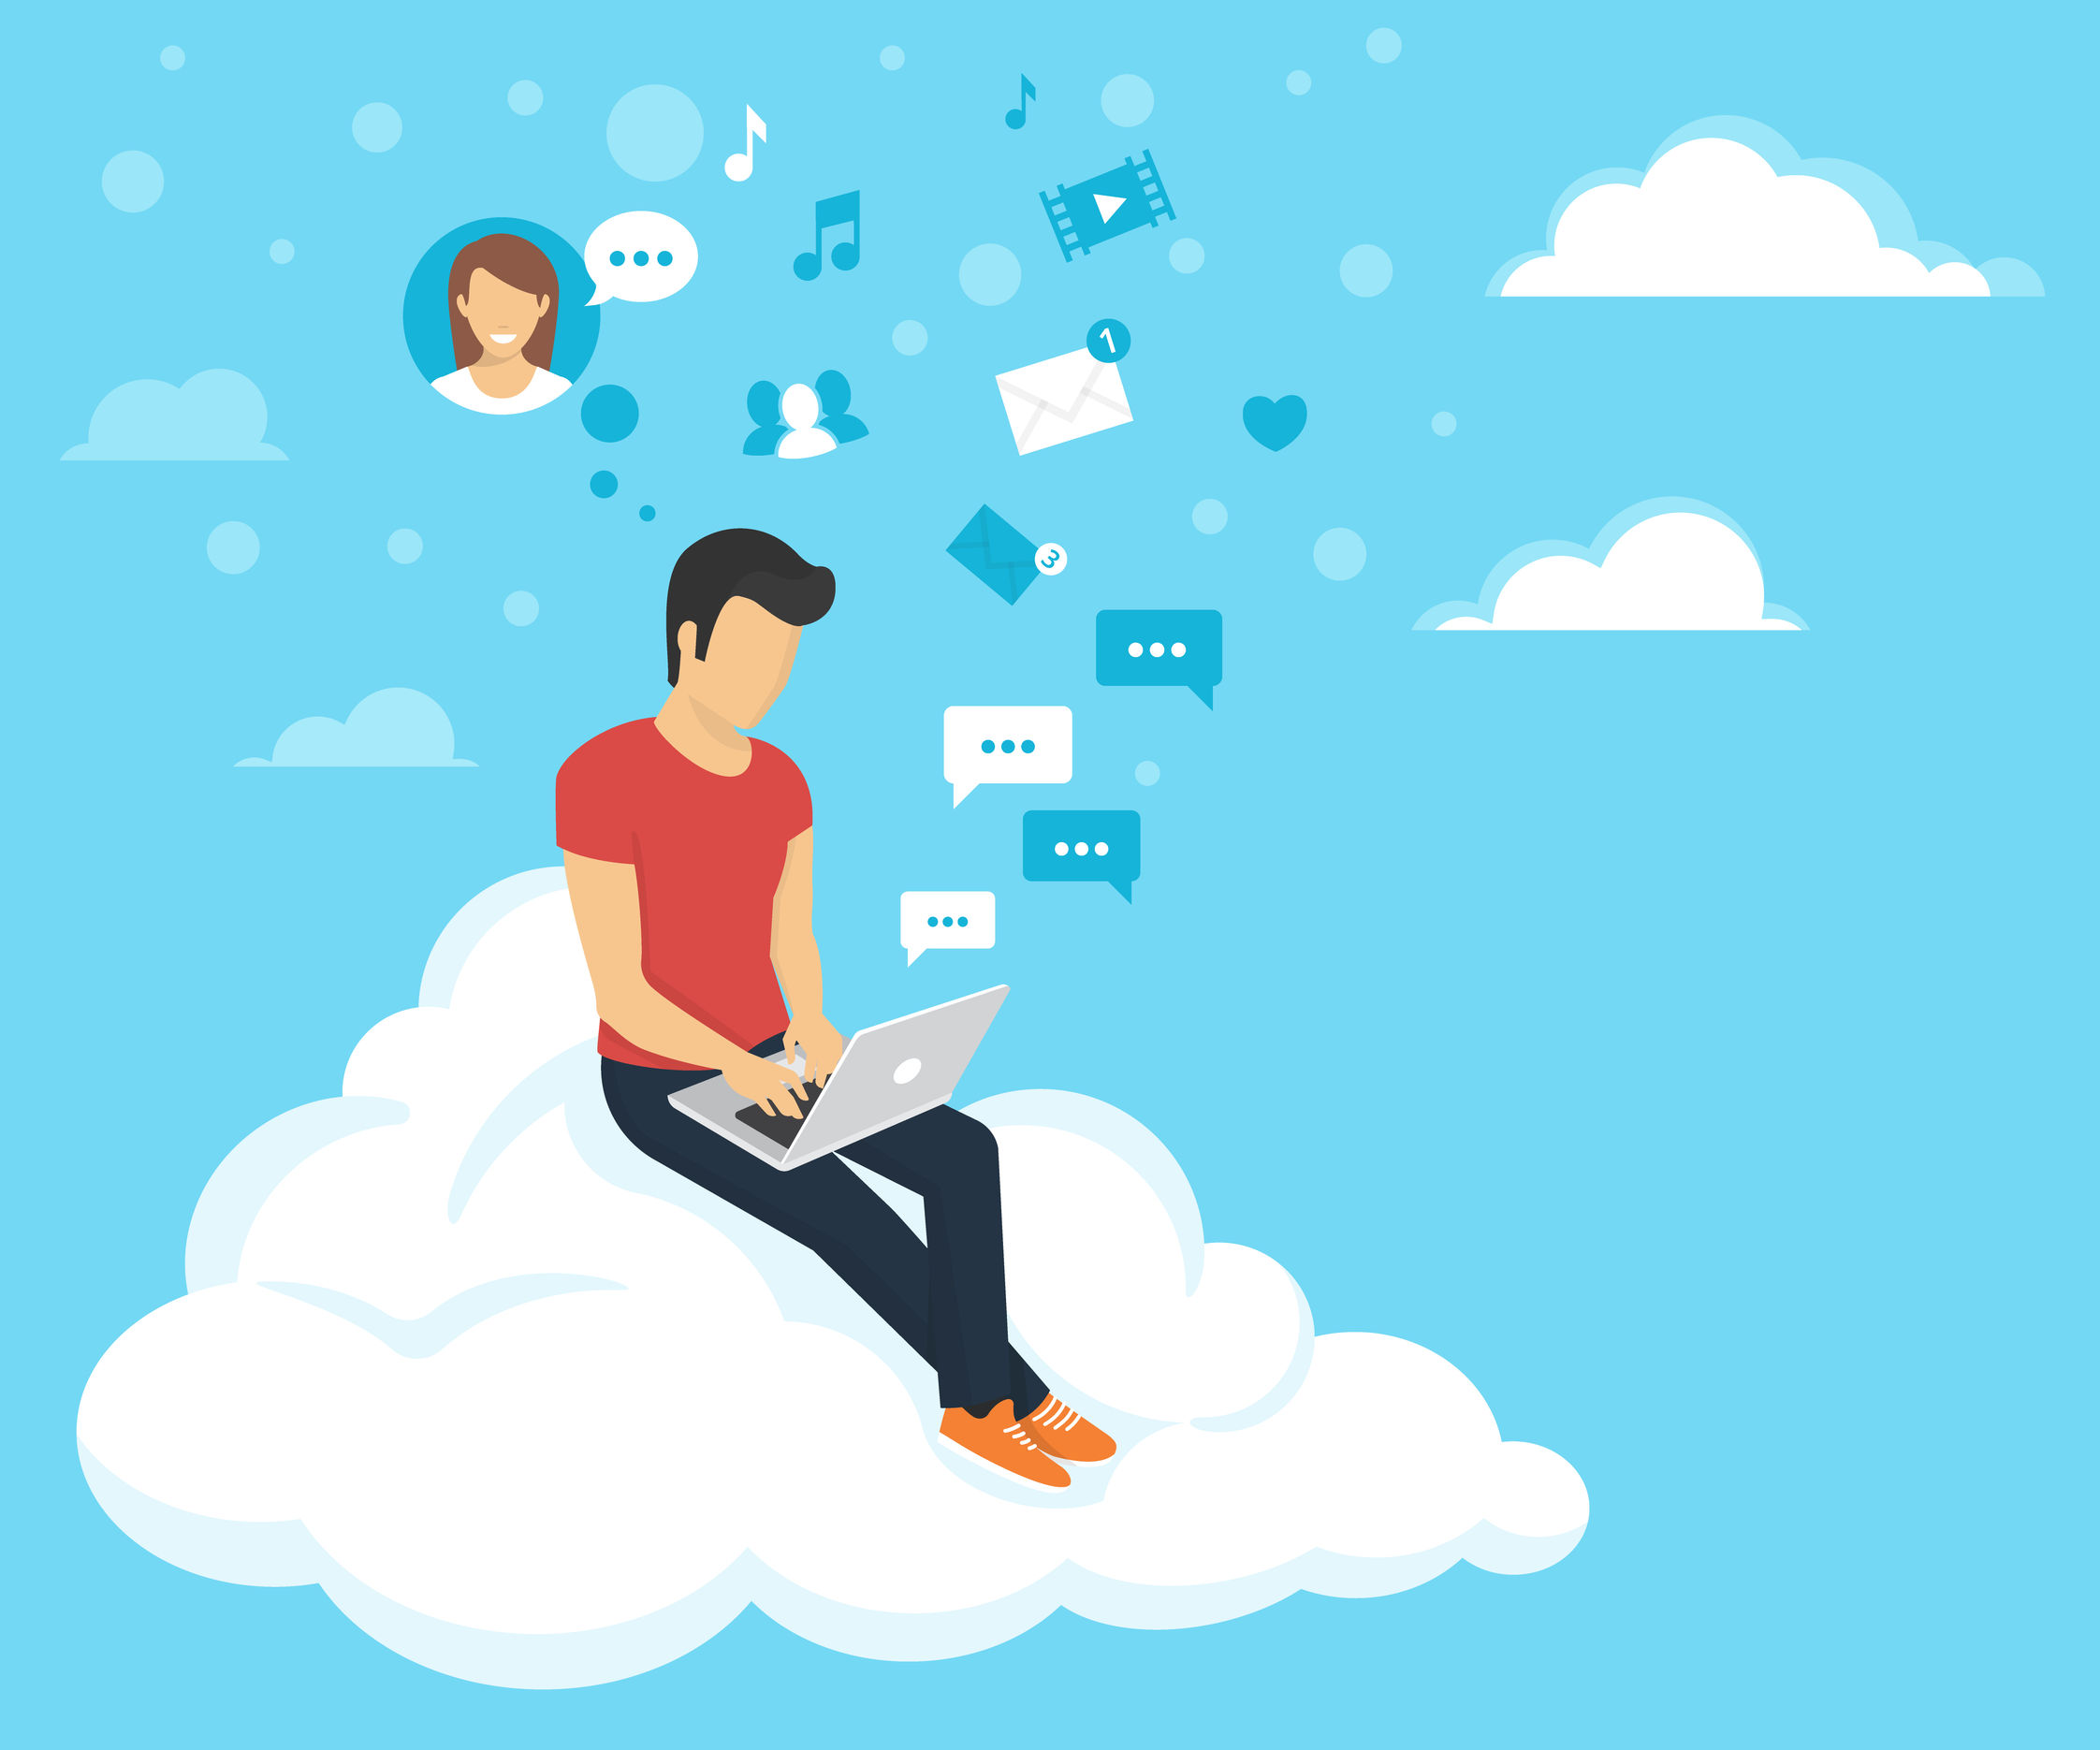 47938402 - young man sitting on the cloud in the sky and working with laptop. flat modern illustration of social networking and texting to friends